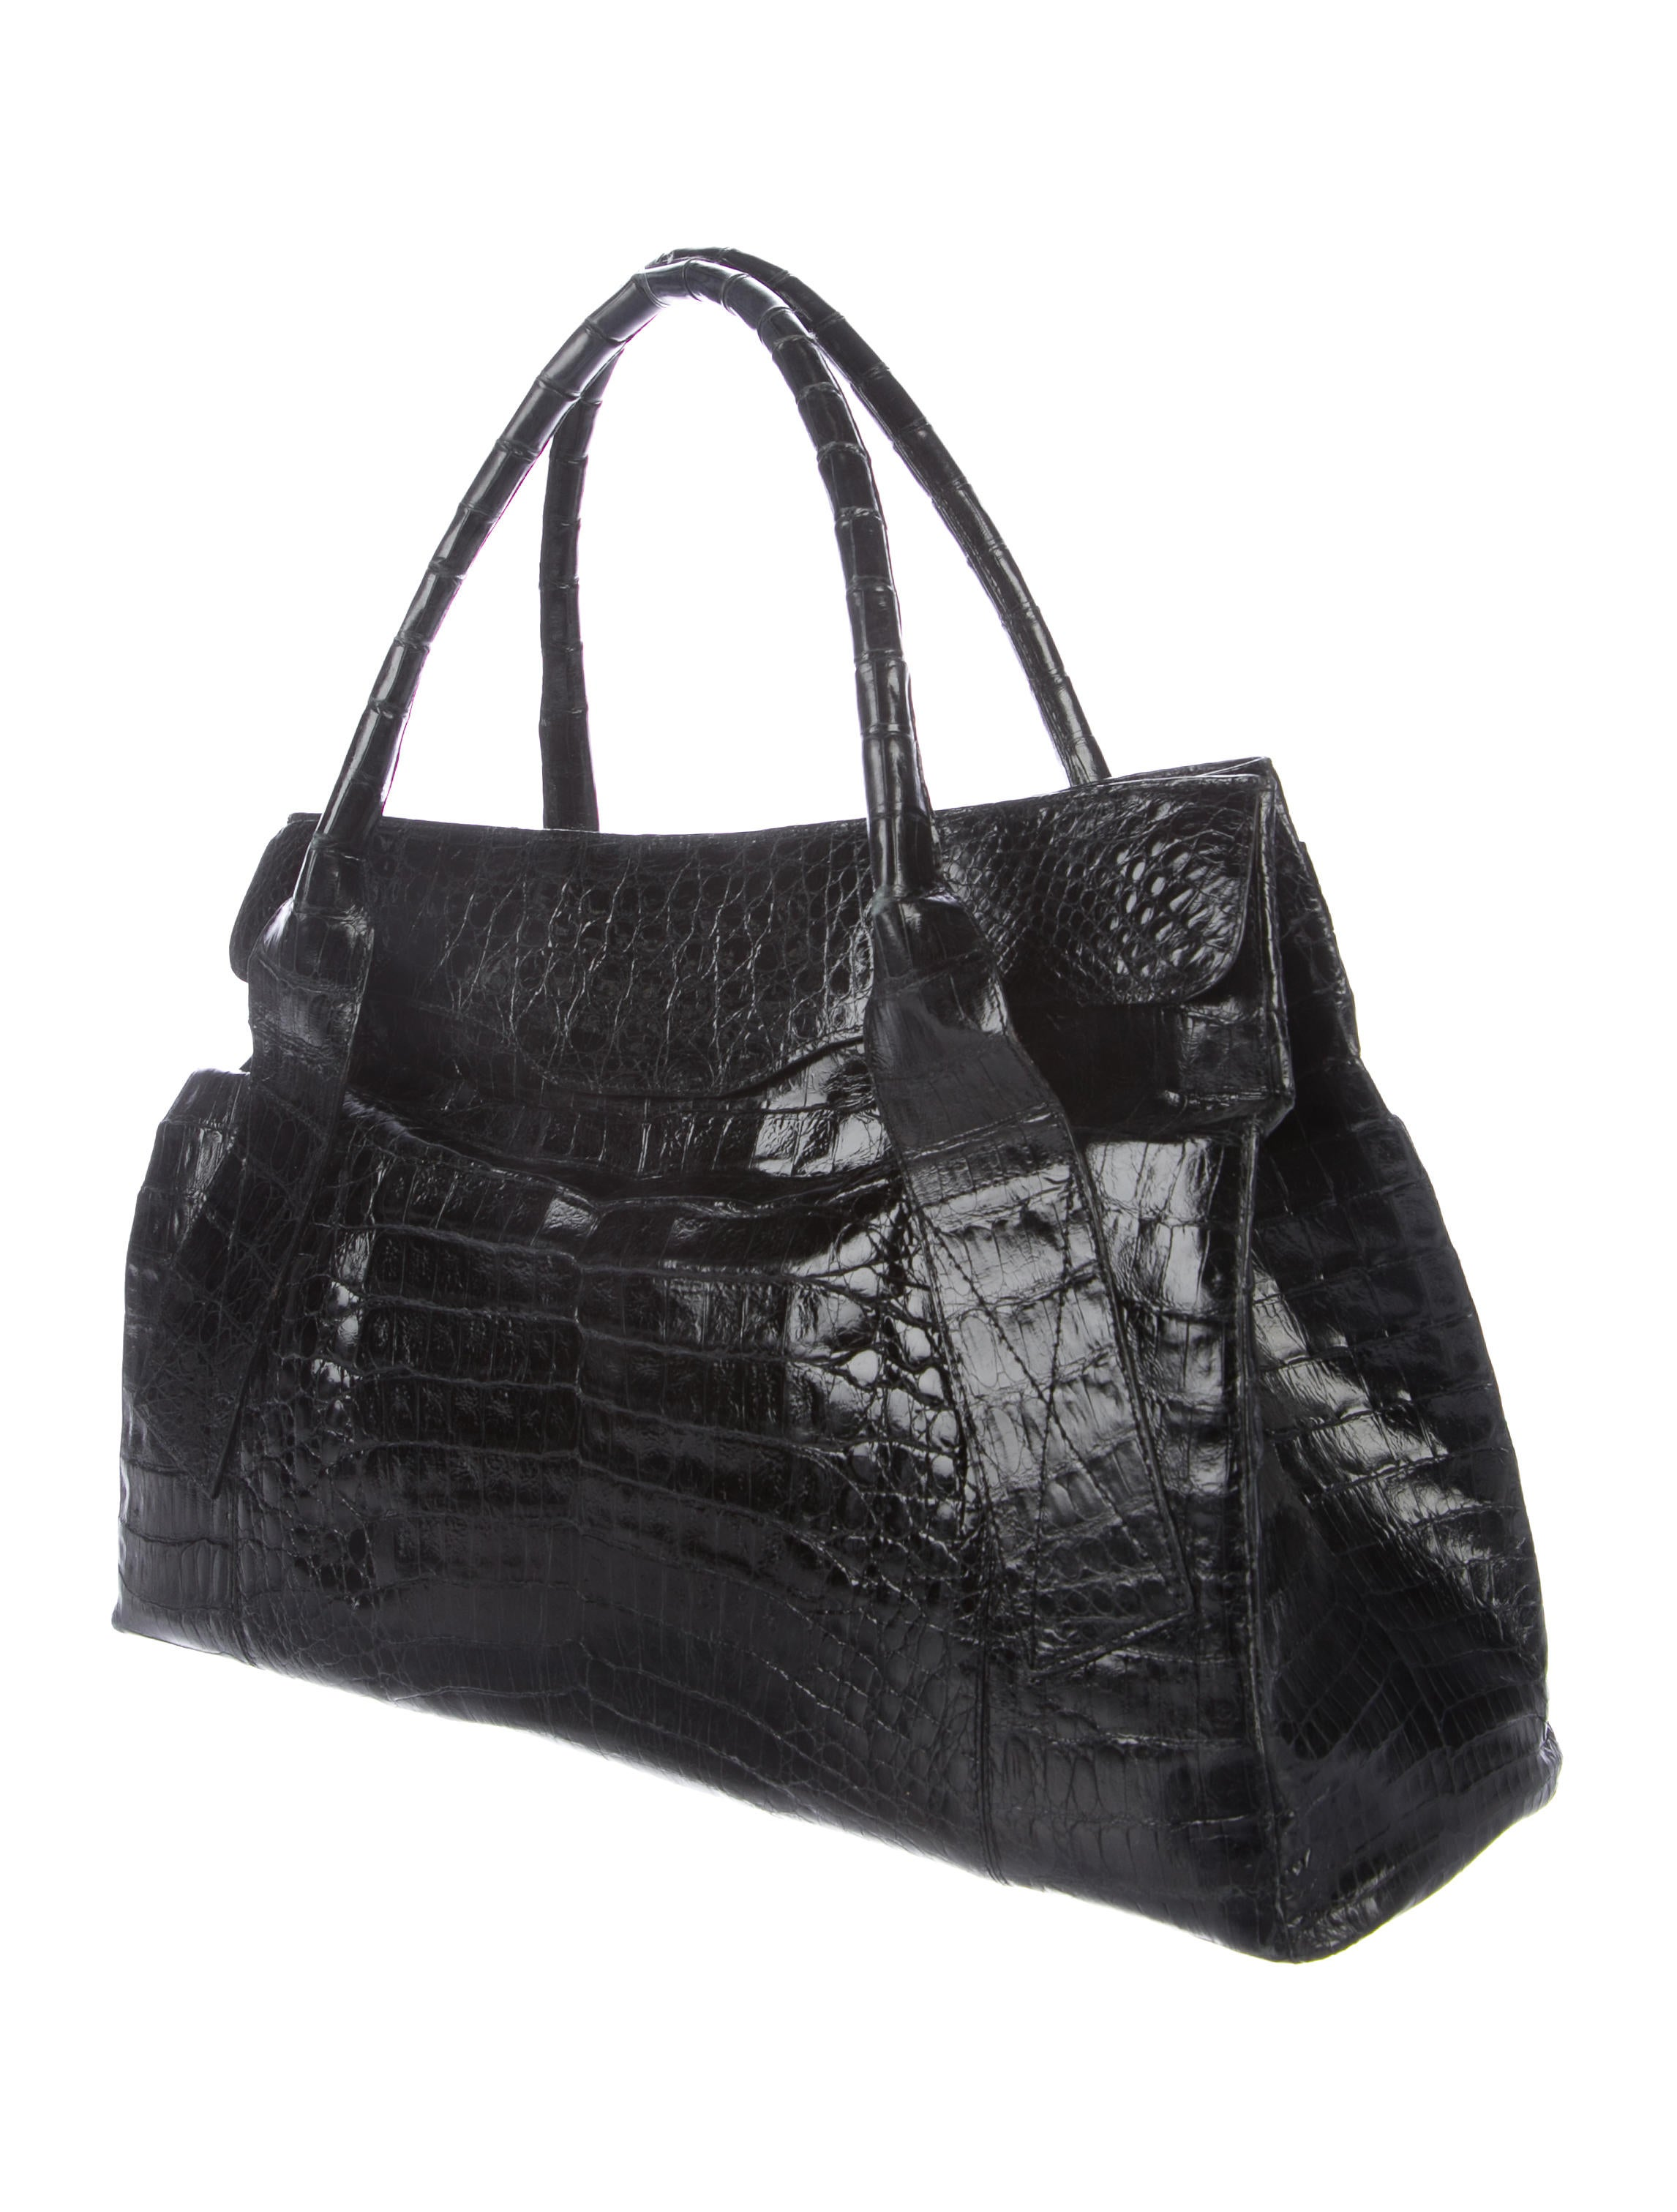 Nancy gonzalez crocodile shopper tote handbags for Nancy gonzalez crocodile tote